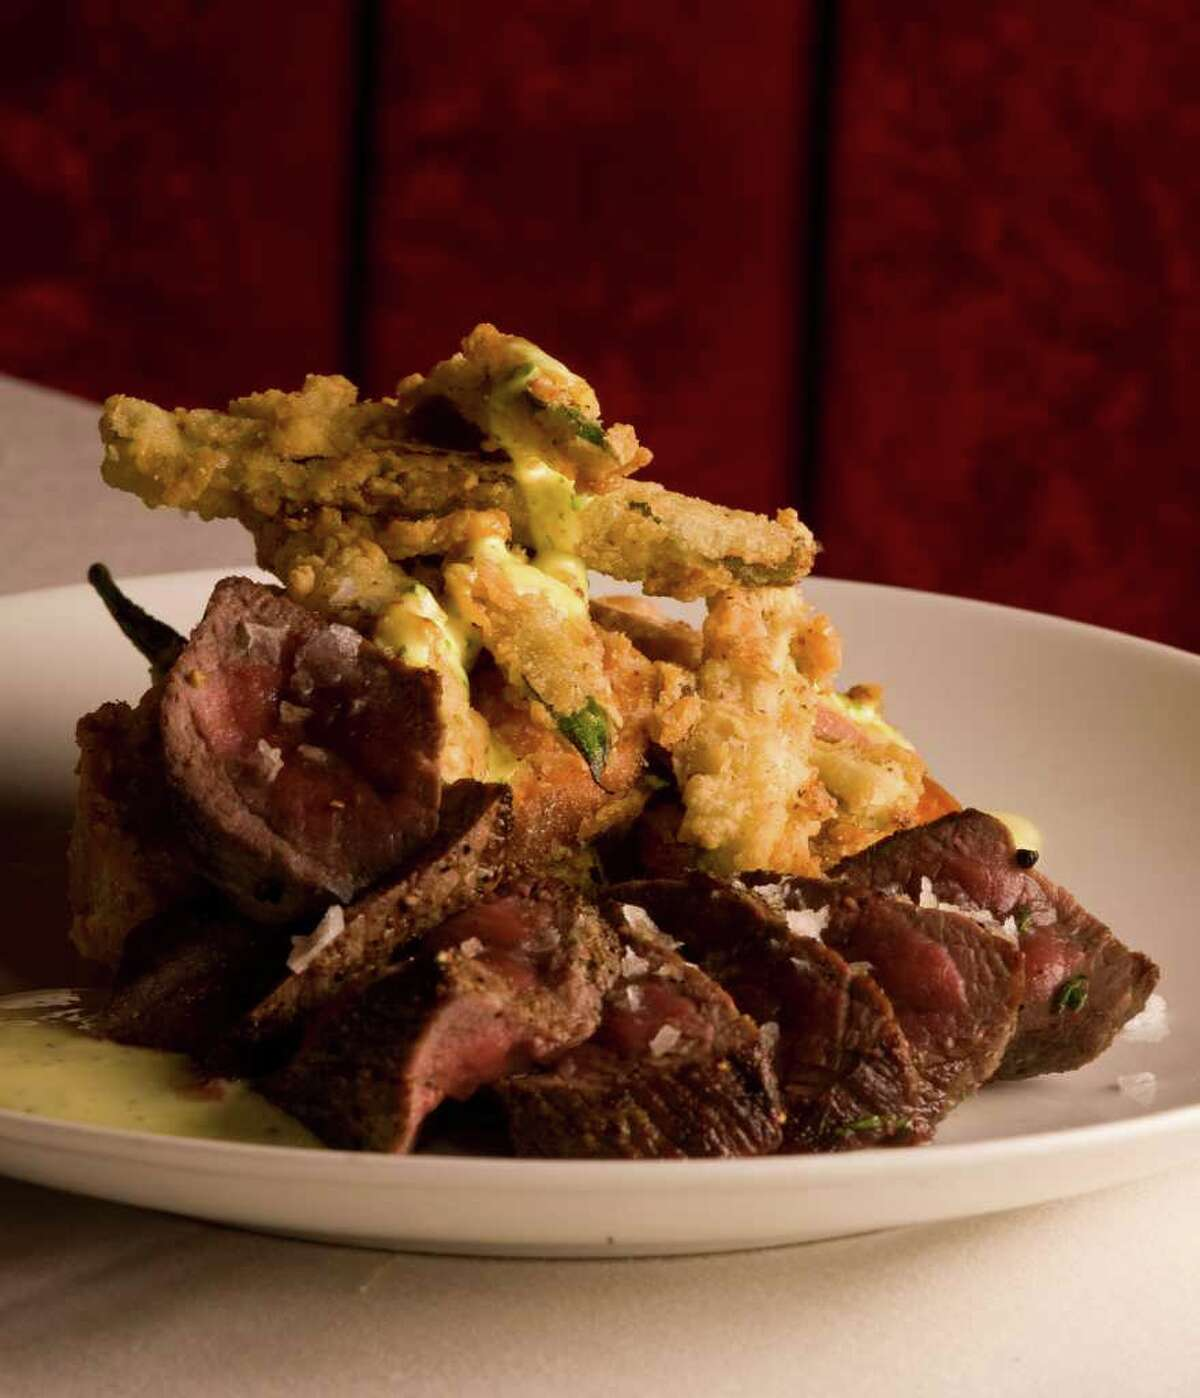 Venison with fried okra and Béarnaise sauce from Coco Chocolate Lounge & Bistro.